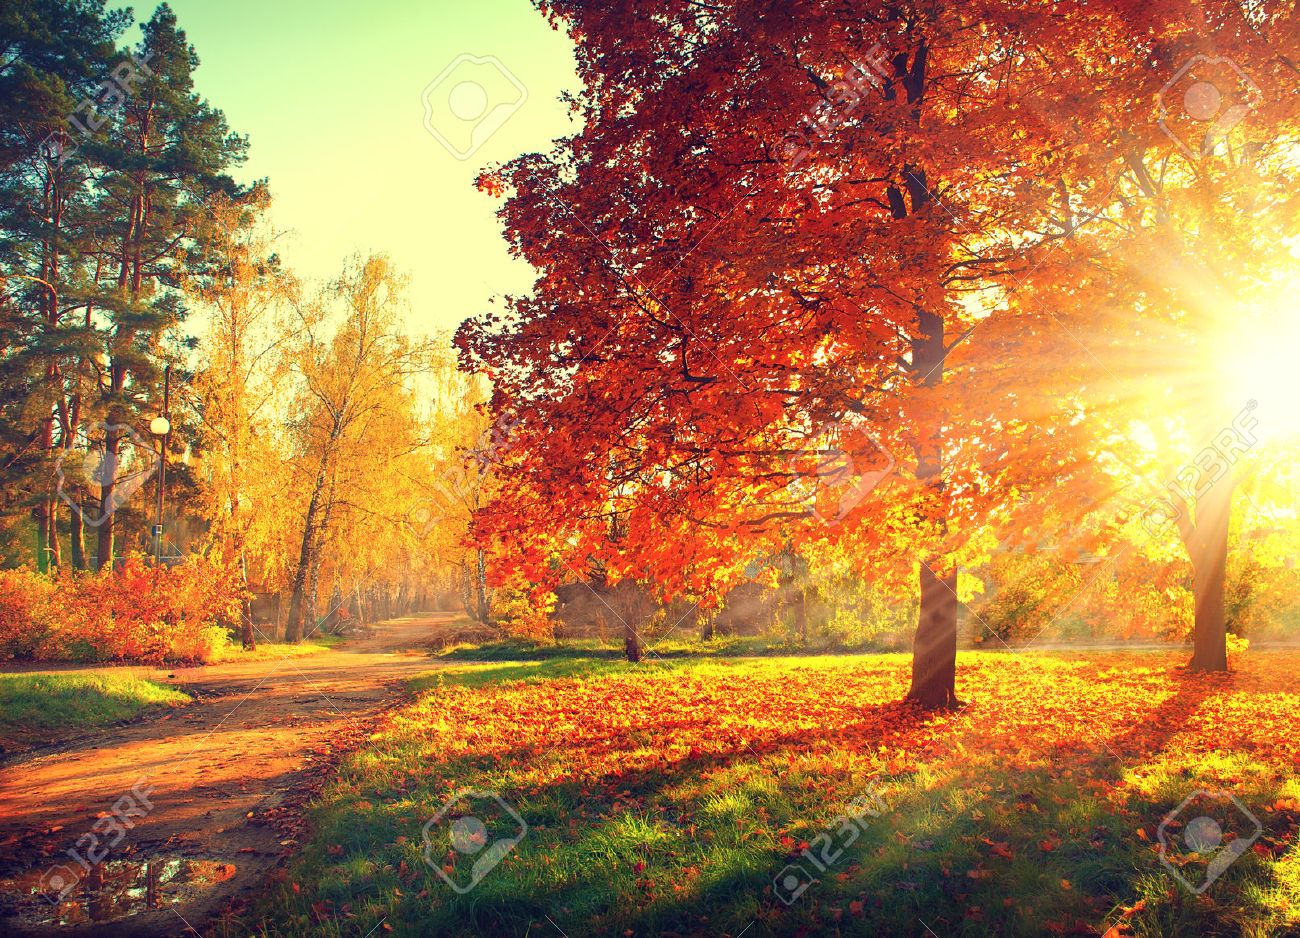 Autumn Scene Fall Trees And Leaves In Sun Light Stock Photo Picture And Royalty Free Image Image 31937235